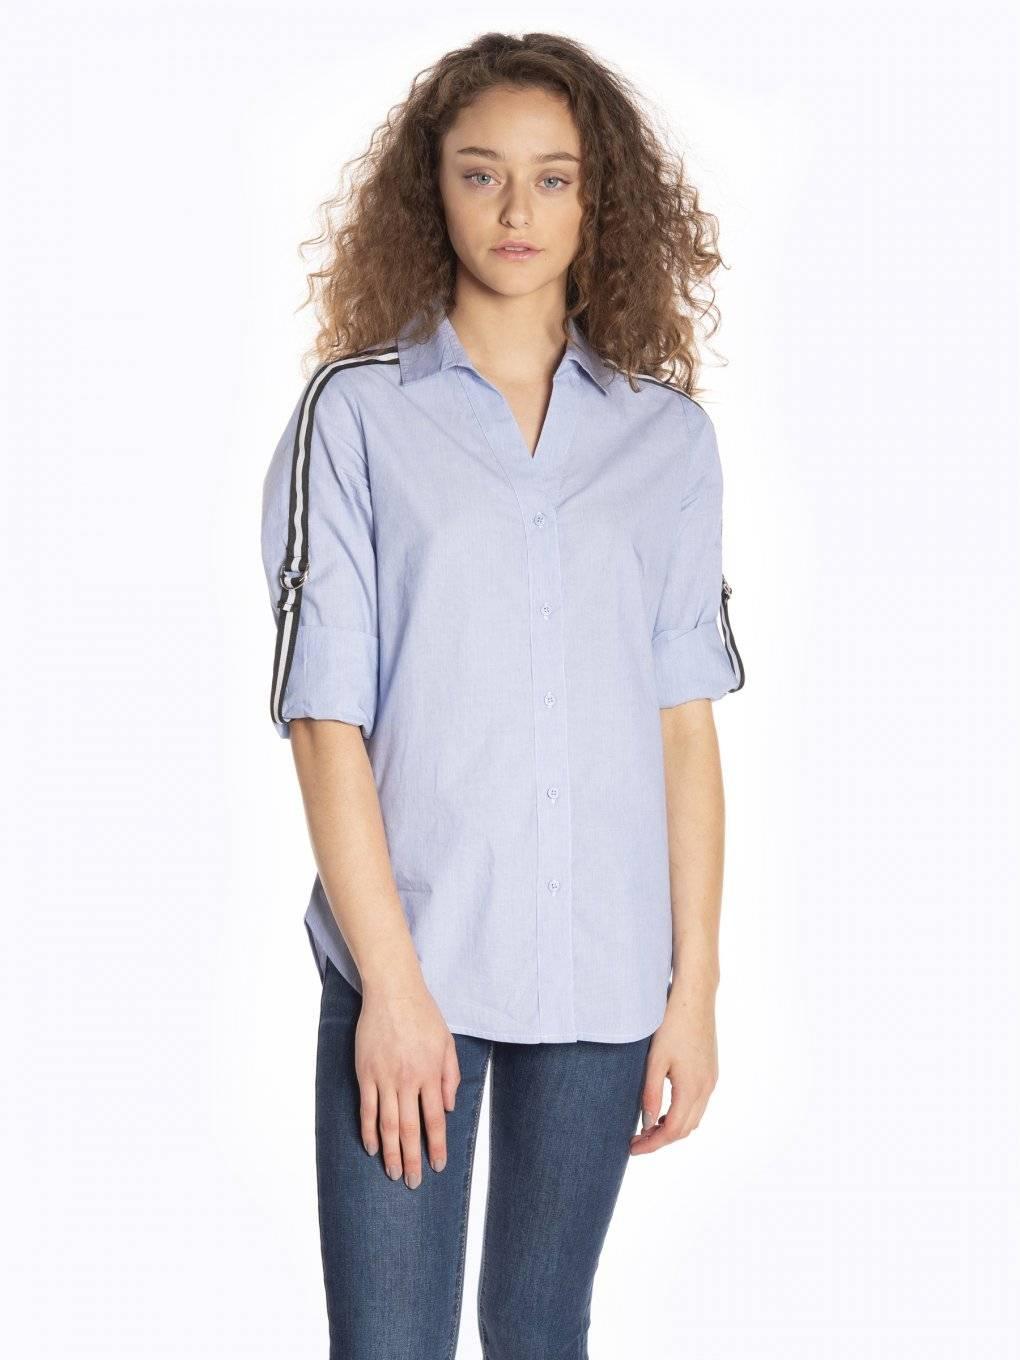 Taped cotton shirt